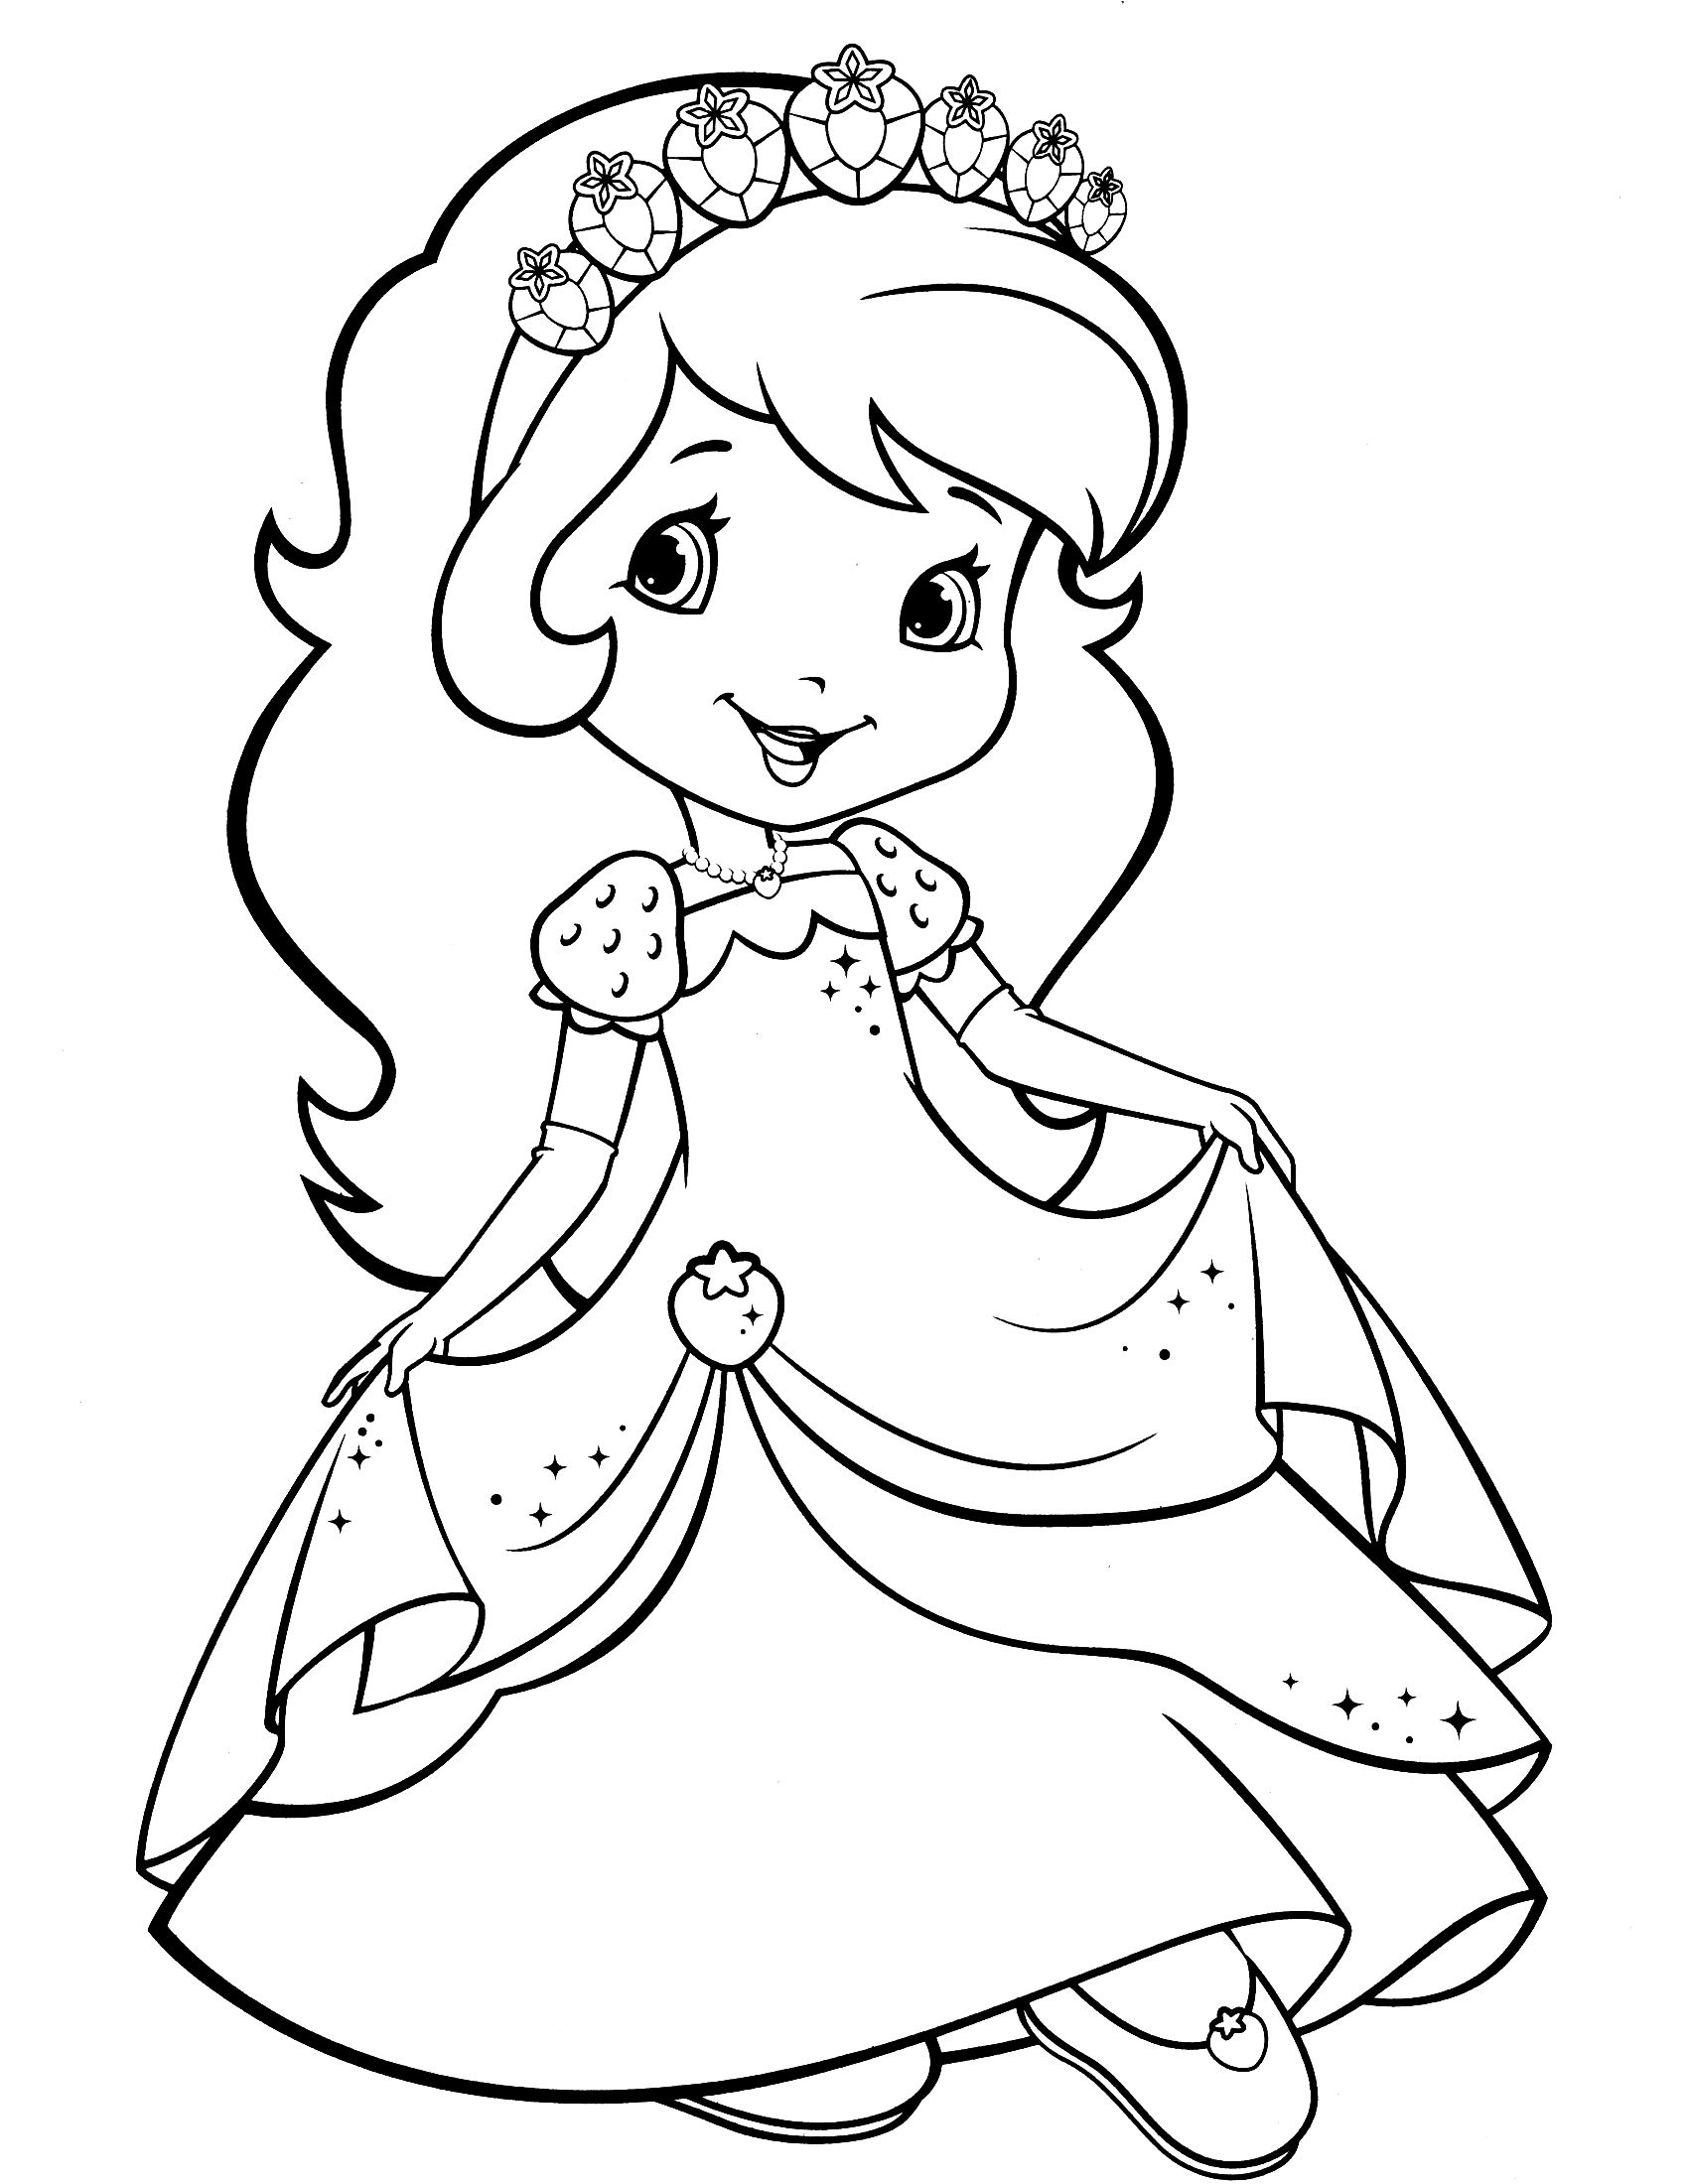 strawberry shortcake coloring pages characters - photo#28